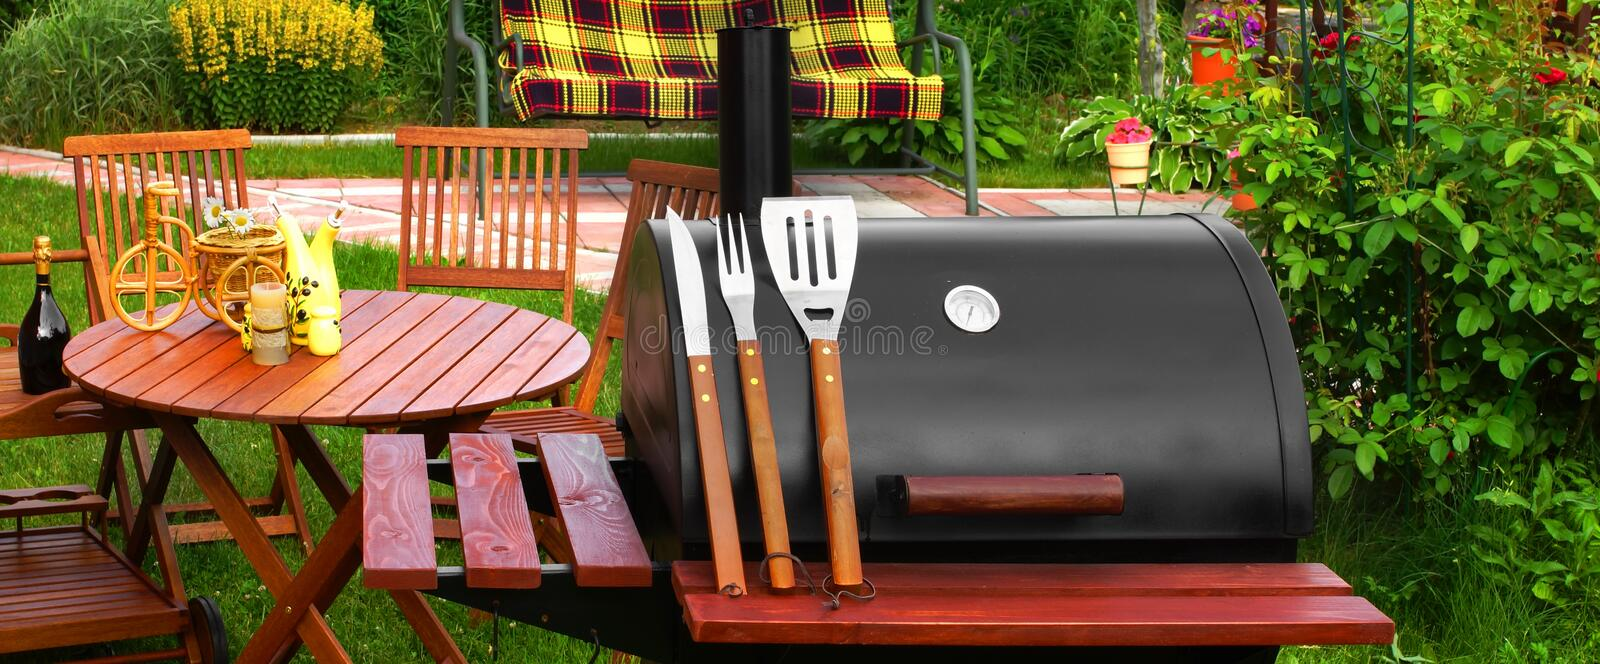 Outdoor Weekend BBQ Grill Party Or Picnic Concept. Outdoor Summer Weekend BBQ Grill Party Or Family Lunch Or Cookot Food Or Picnic Concept stock photography